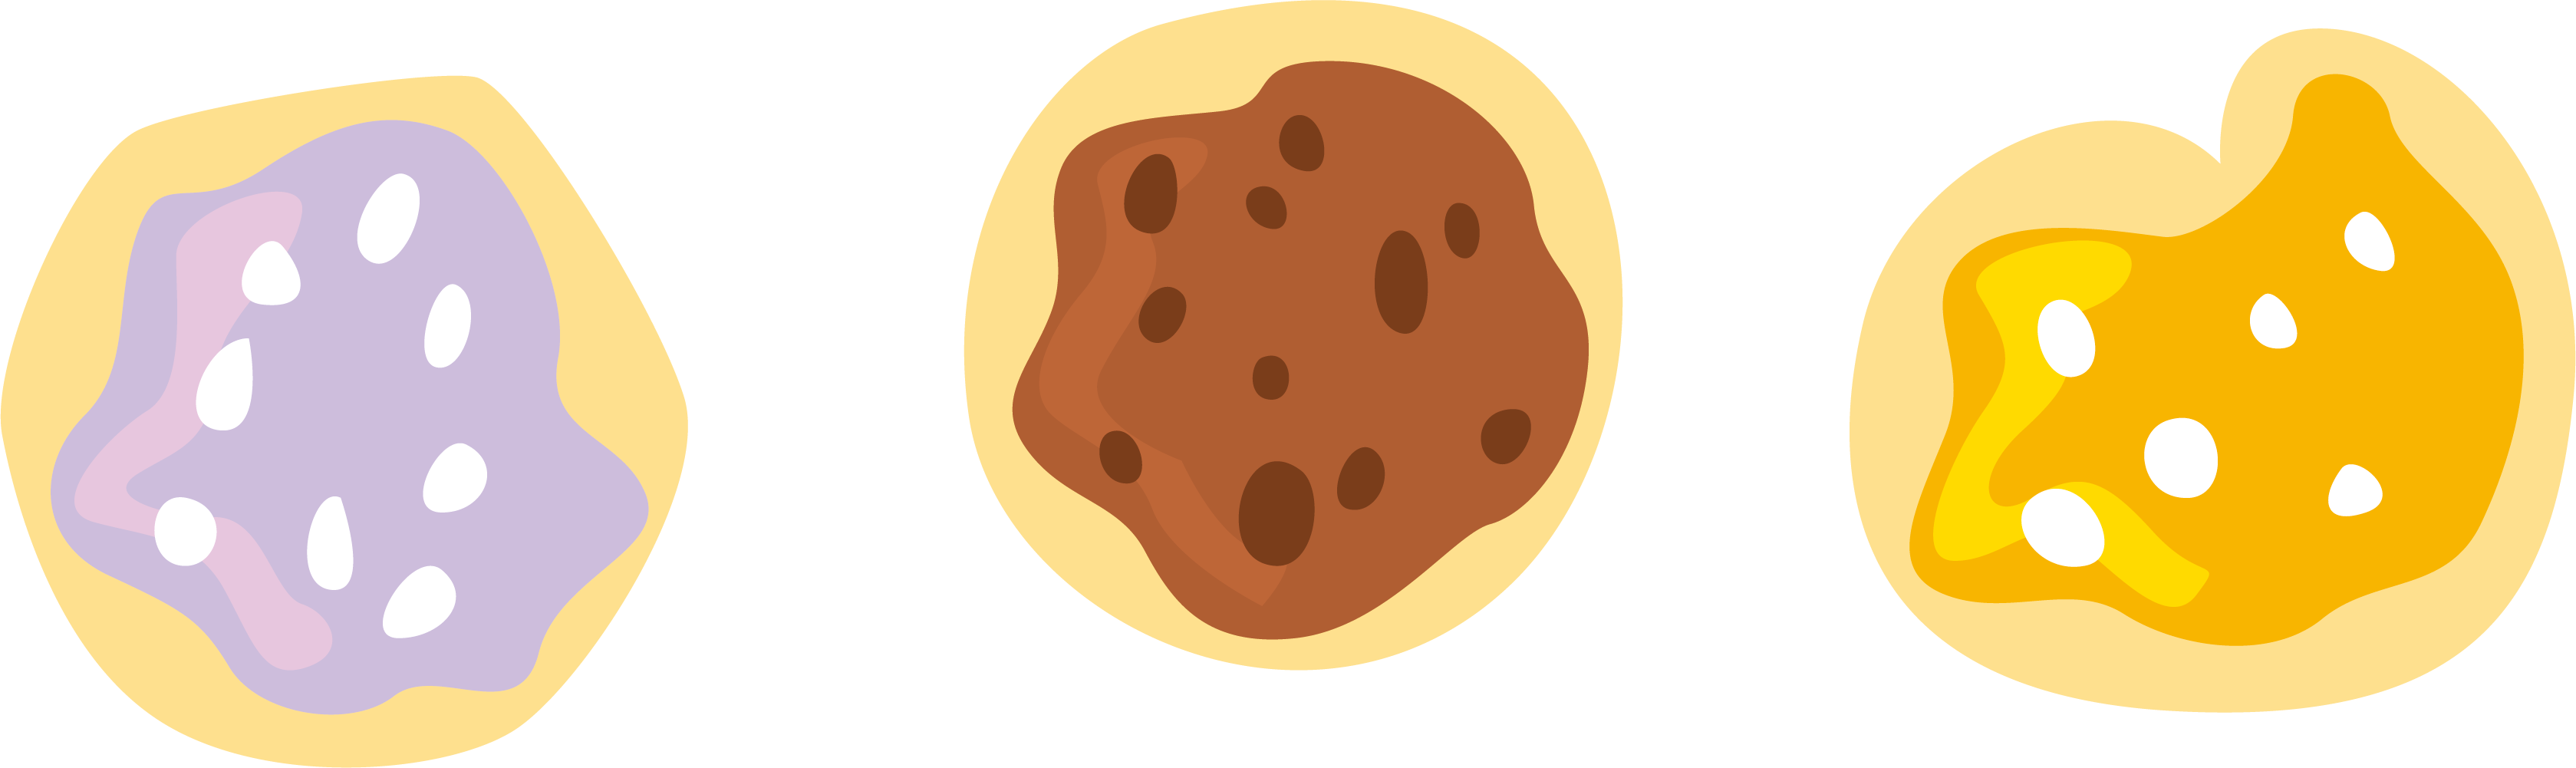 Cookie clipart butter cookie. Chocolate chip purple cookies